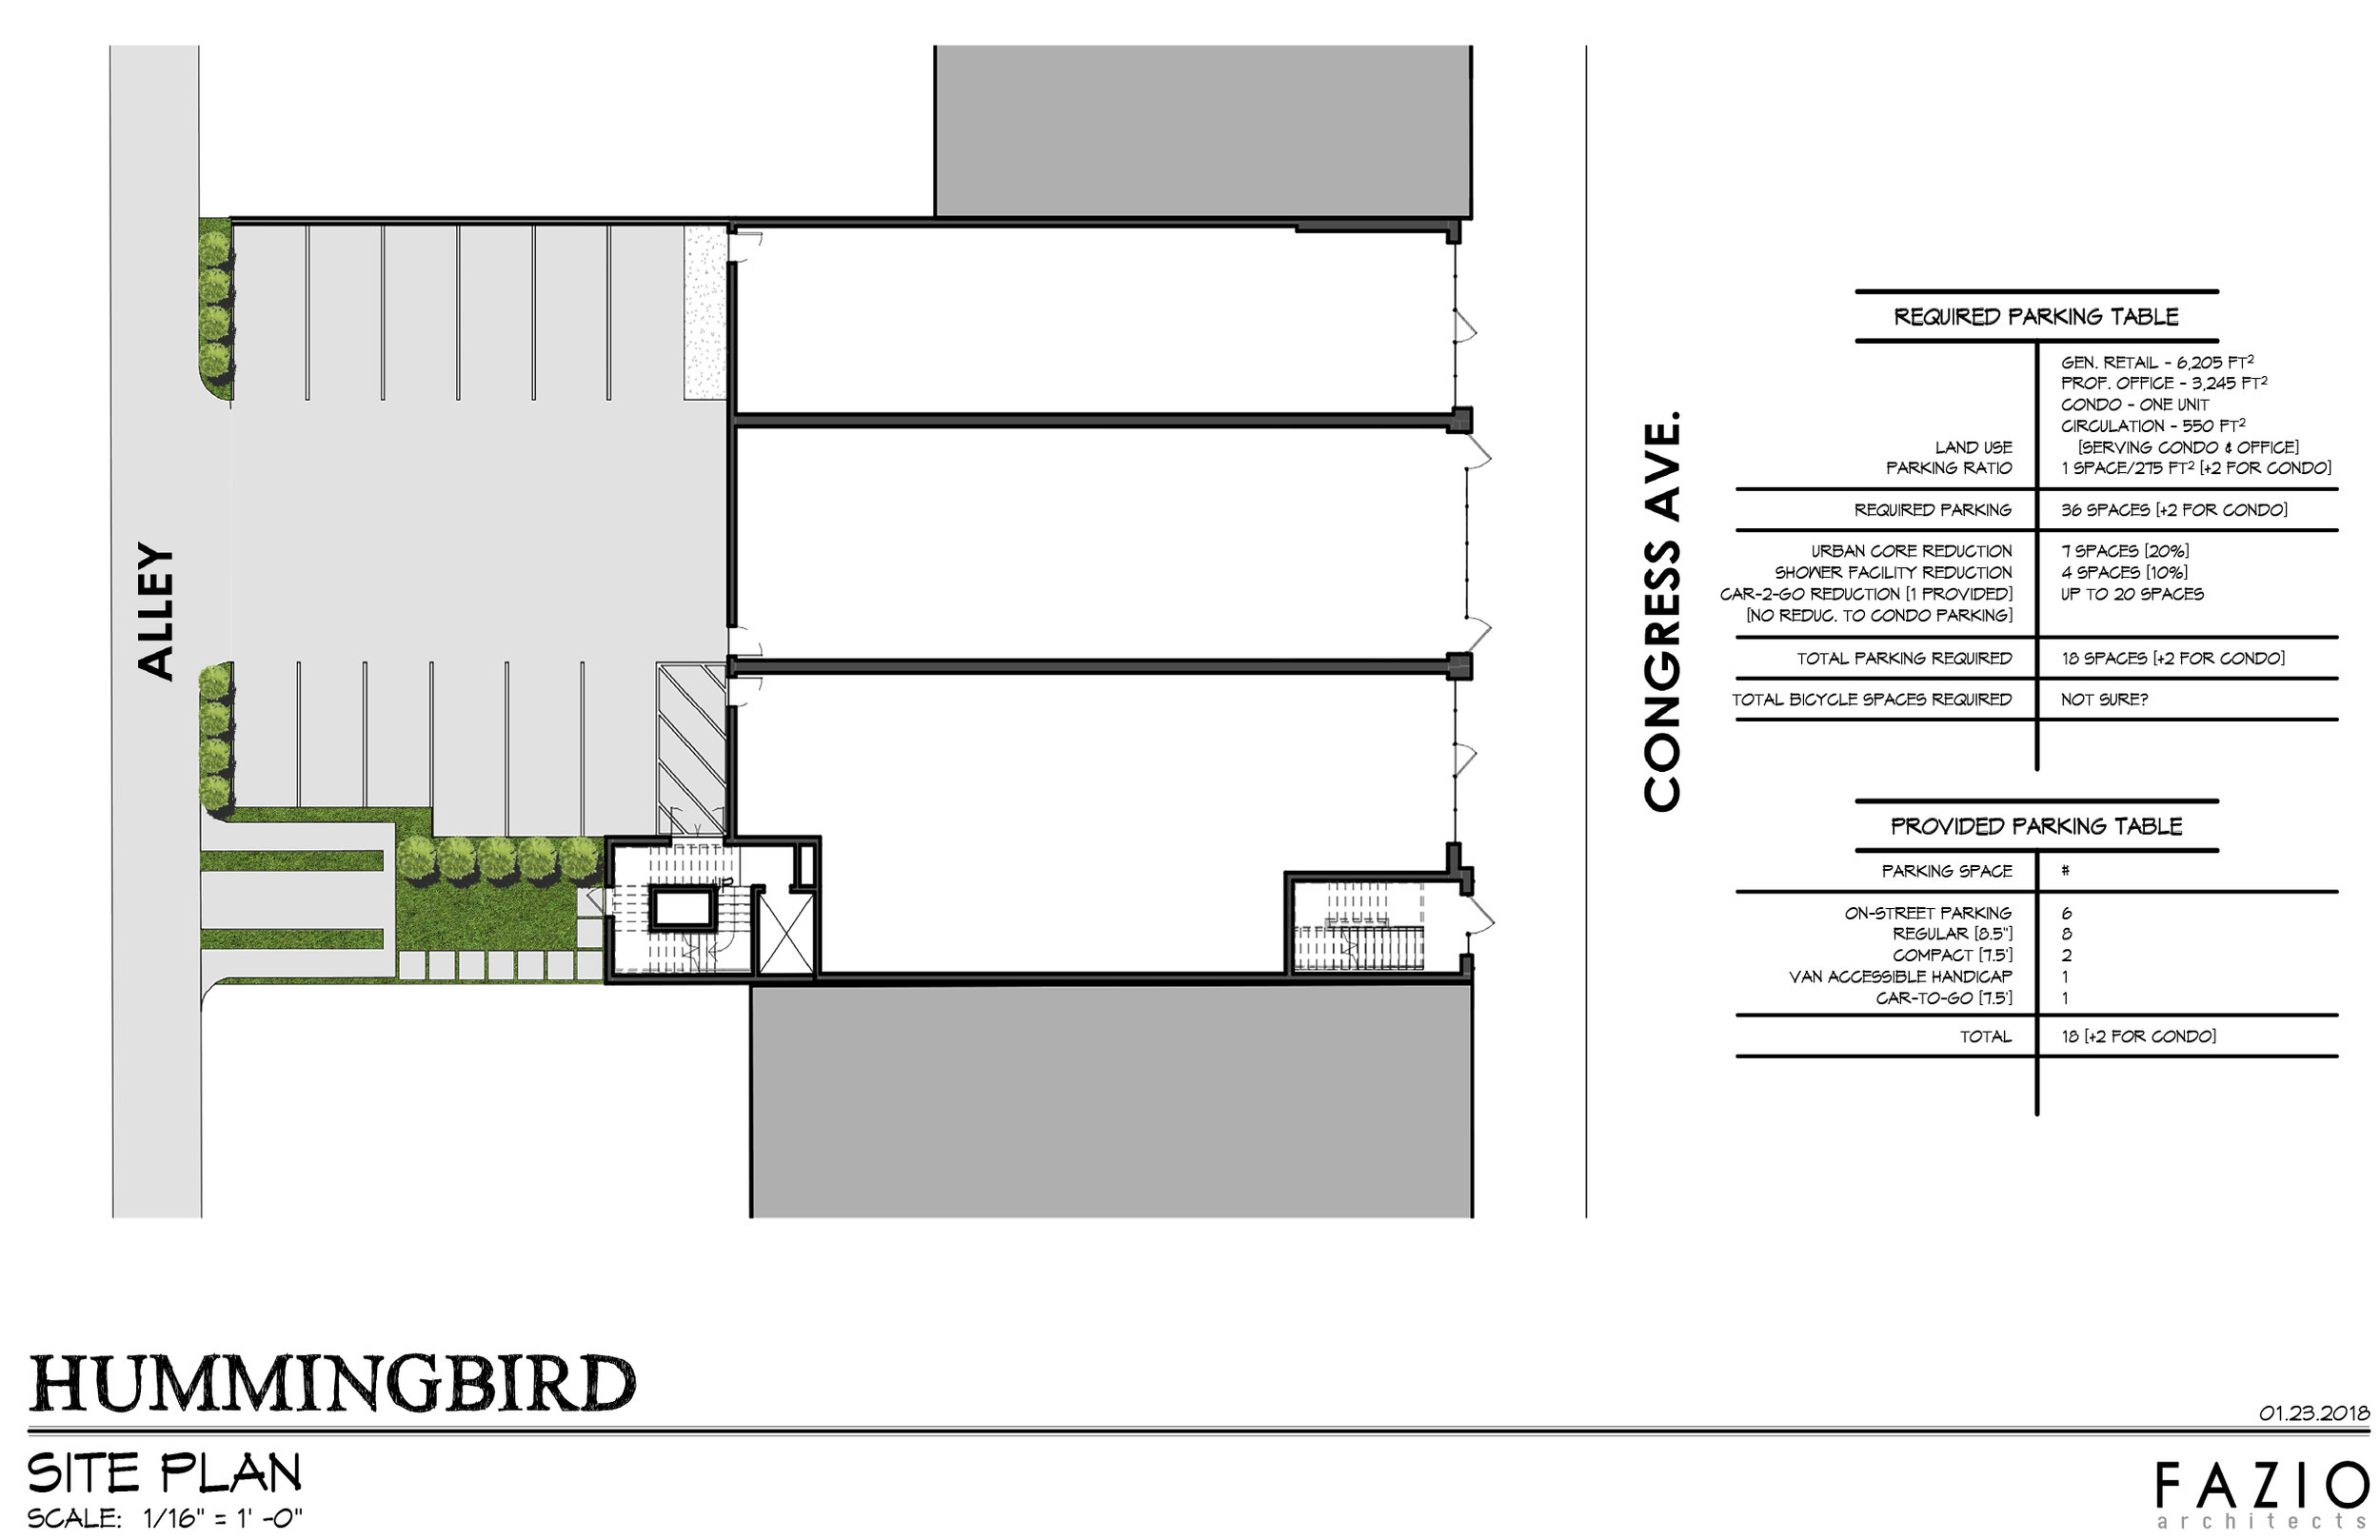 Hummingbird Site Model - A101 - RENDERING-2.jpg